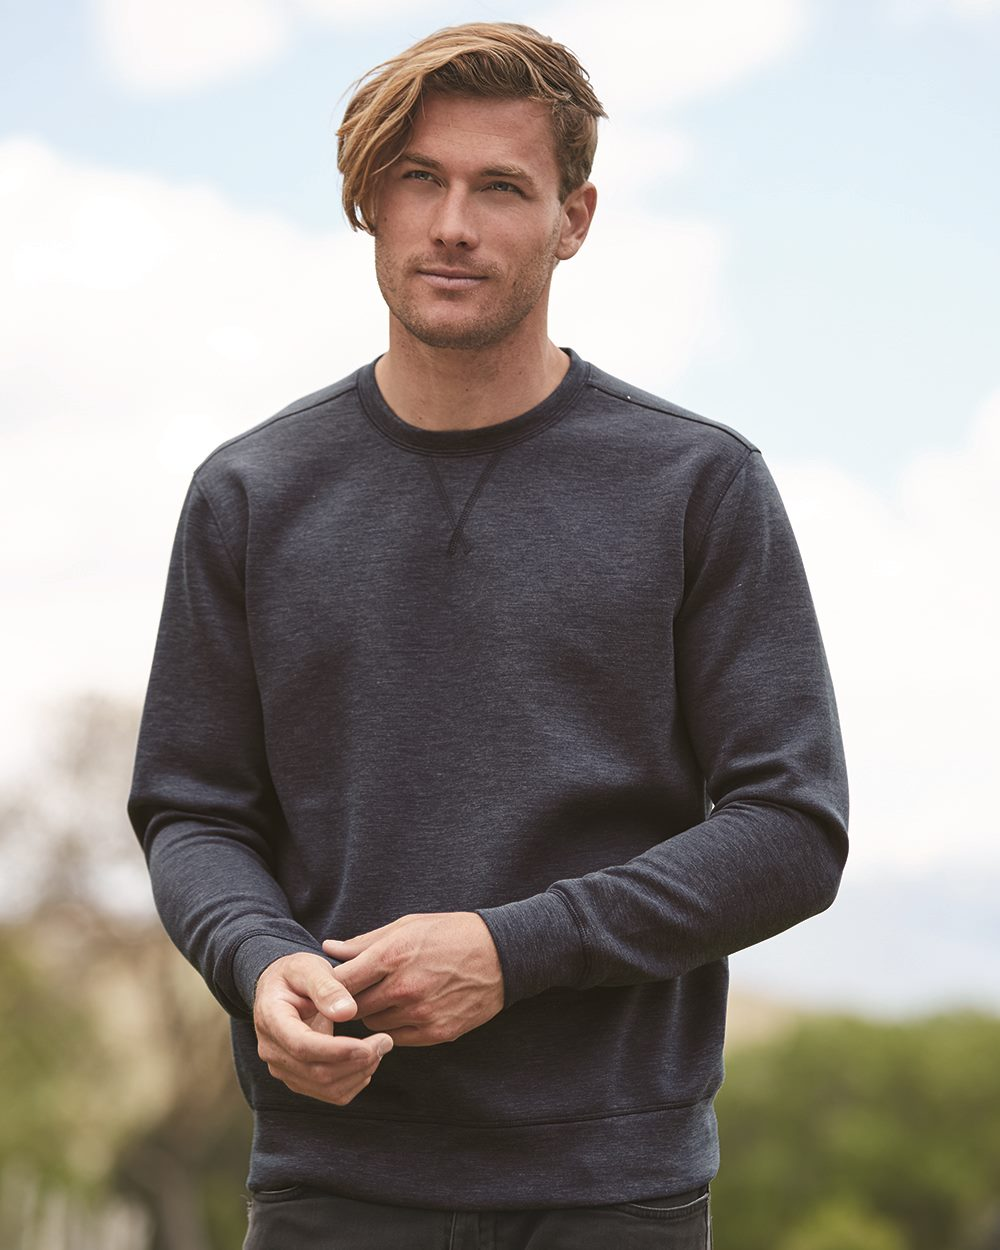 Weatherproof 18703 - Heat Last Men's Fleece Tech Crewneck Sweatshirt